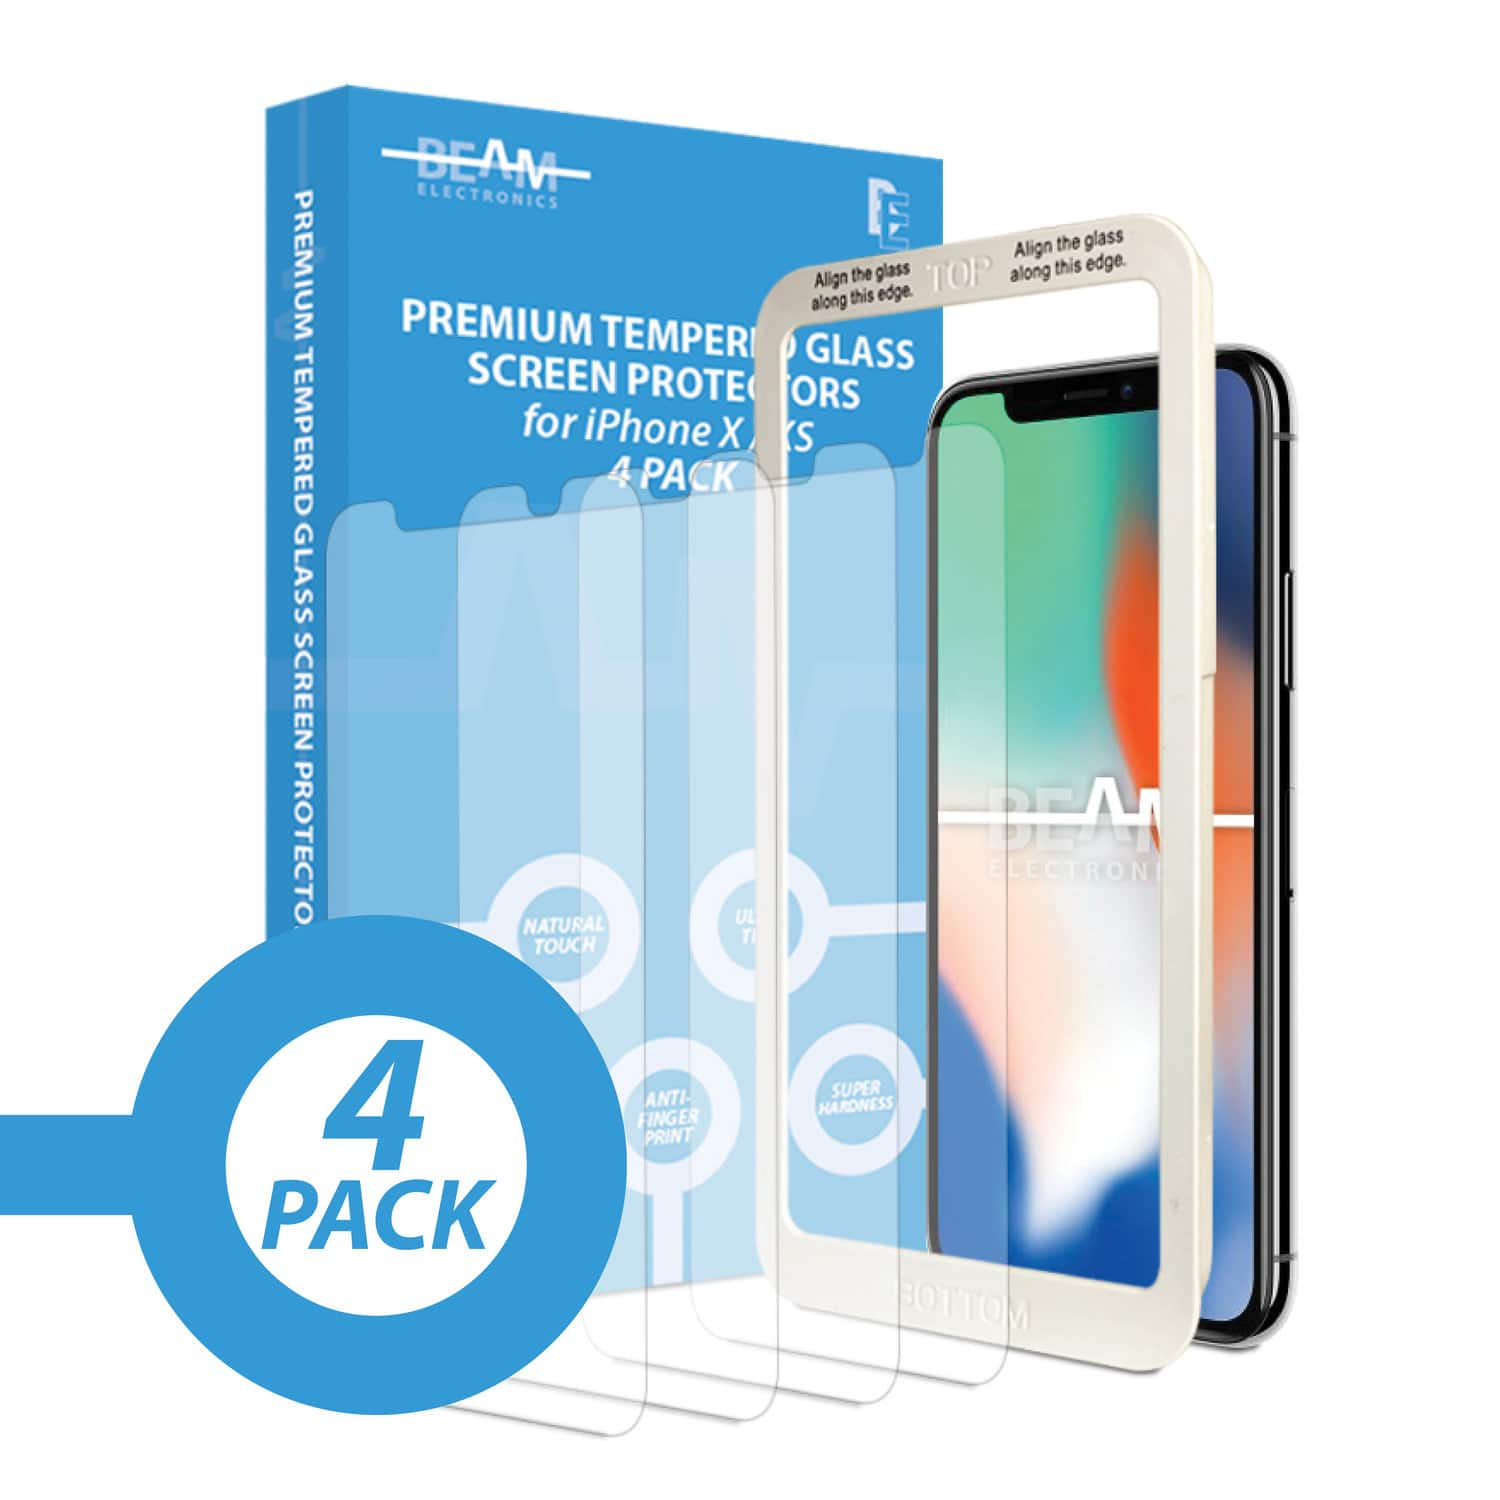 4 Pack of Glass Screen Protectors - iPhone X/XS $3.99 + FS